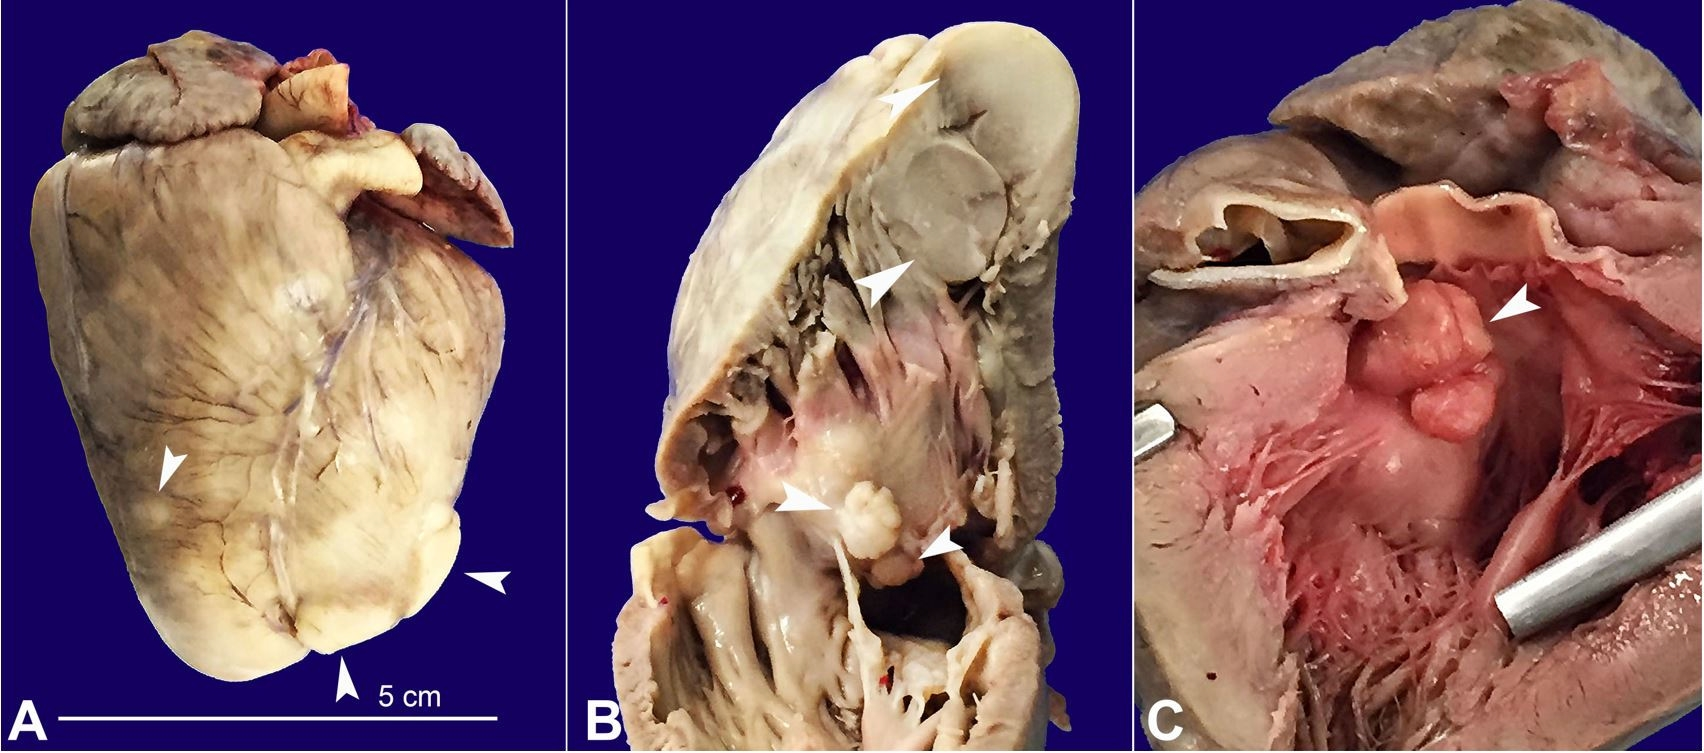 Gross view of the heart. A - Anterior face of the heart showing several whitish nodules (arrowheads); B - Right ventricular outflow tract with some of the nodules represented on the cut surface (arrowheads); C - Left ventricular outflow tract evidencing subaortic obstruction by the largest rhabdomyoma of the interventricular septum (arrowhead).